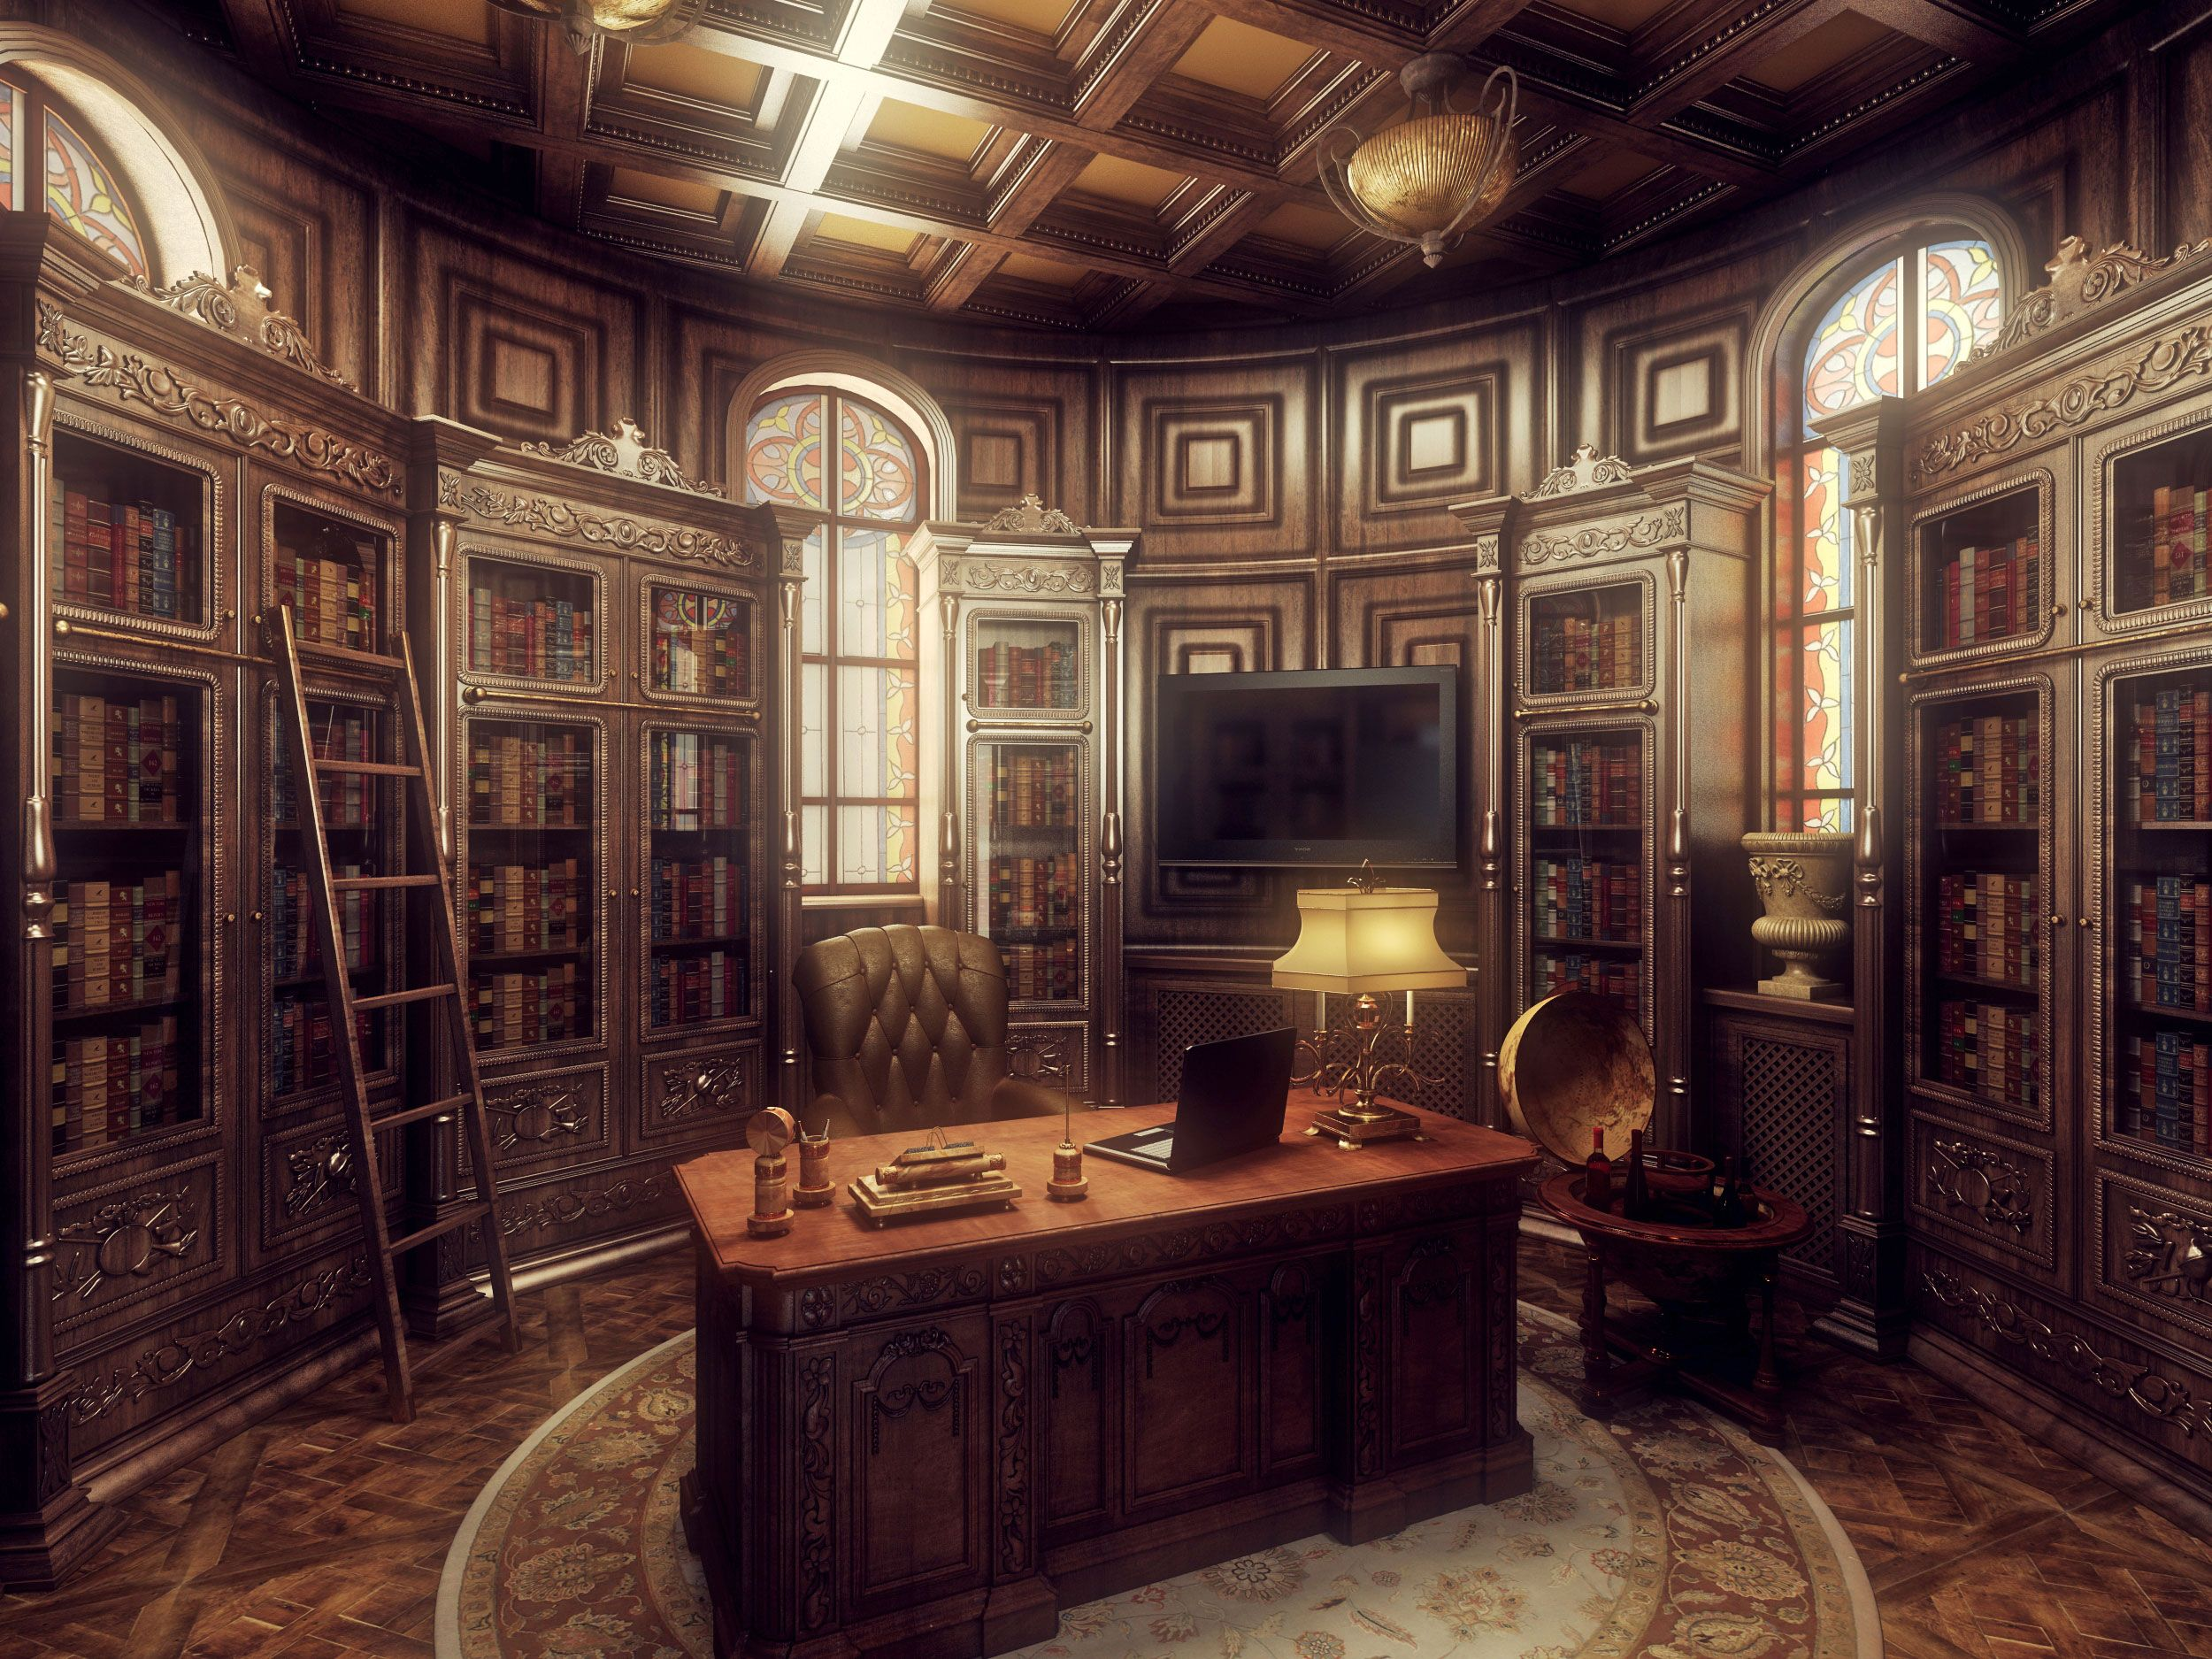 Steampunk Gothic Office Steampunk Pinterest Gothic Steampunk Interior And Interiors